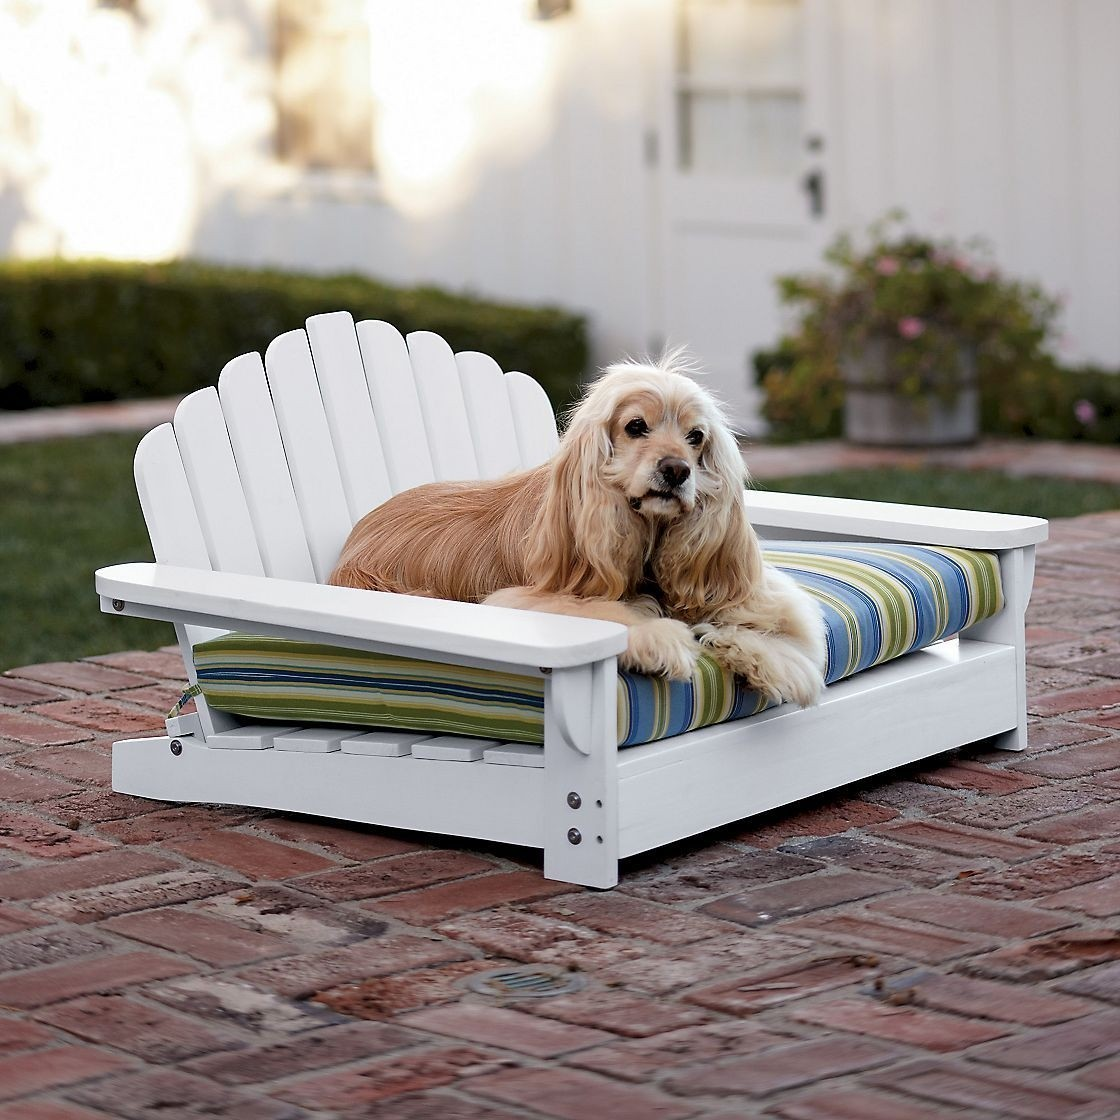 outdoor dog furniture foter rh foter com dog chewing outdoor furniture dog resistant outdoor furniture